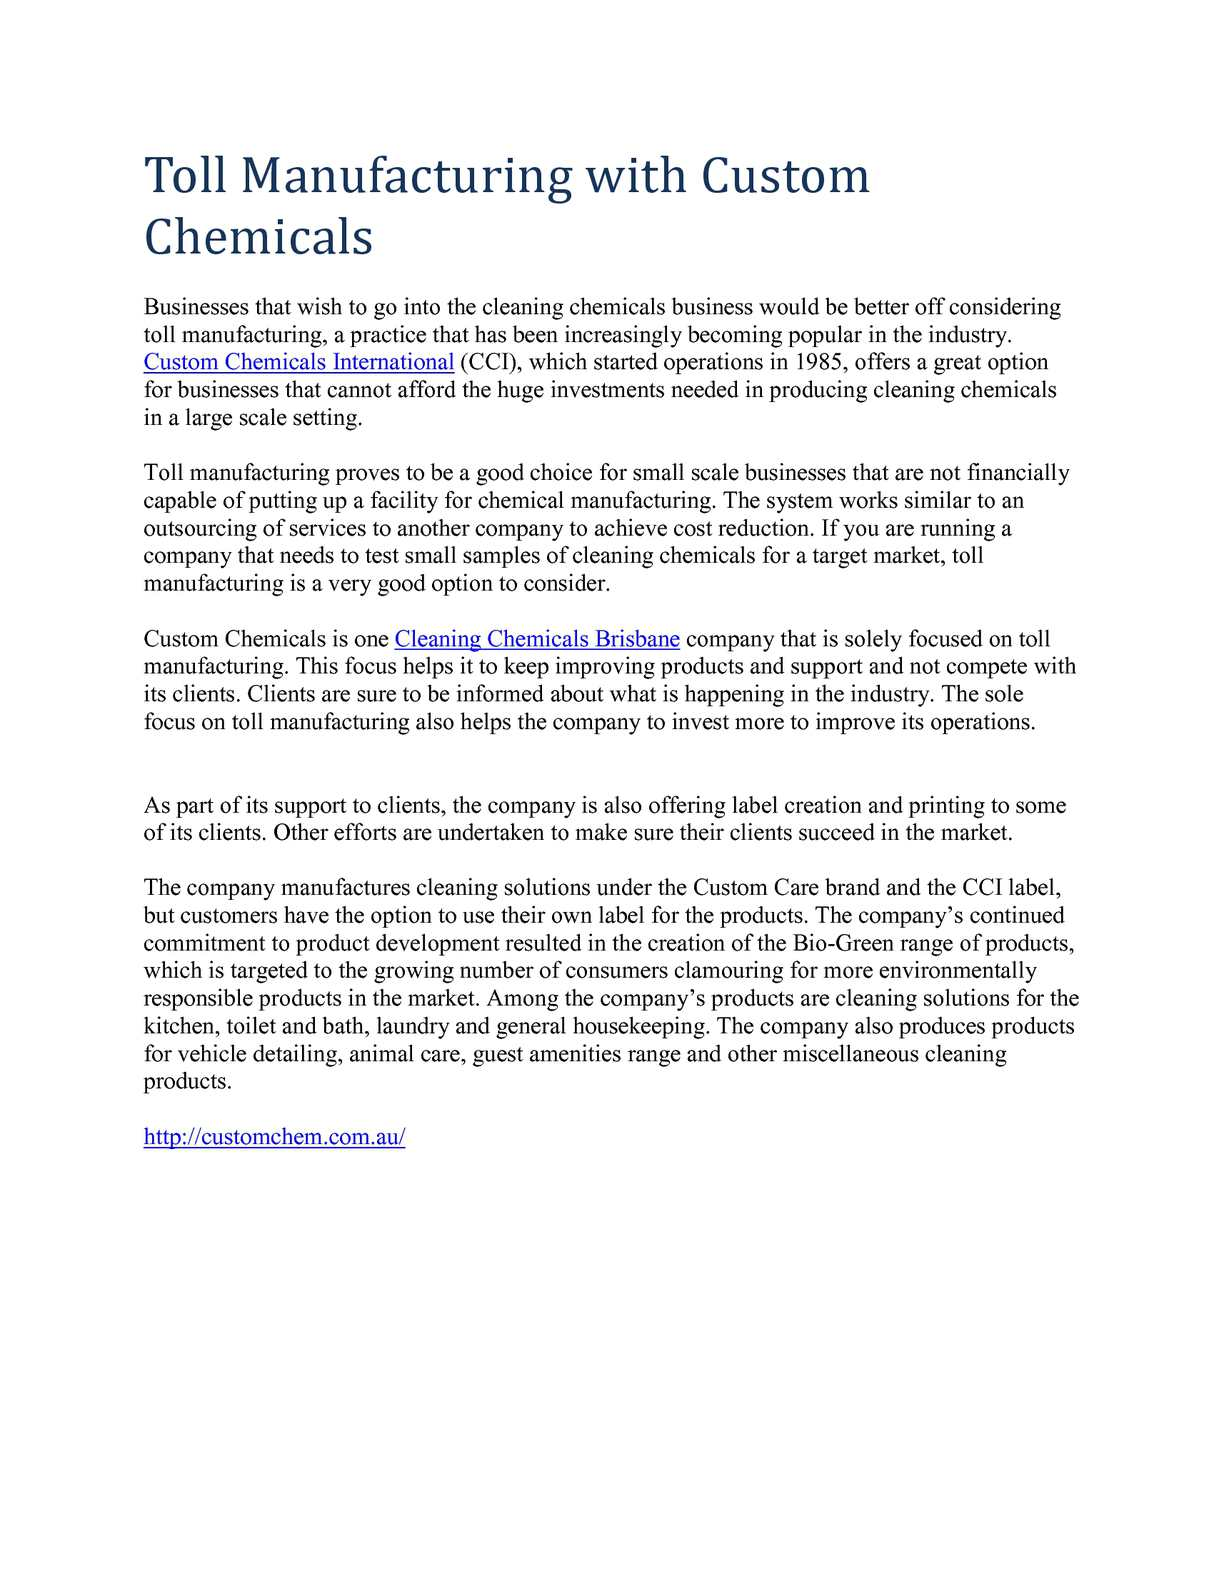 Calaméo - Toll Manufacturing with Custom Chemicals